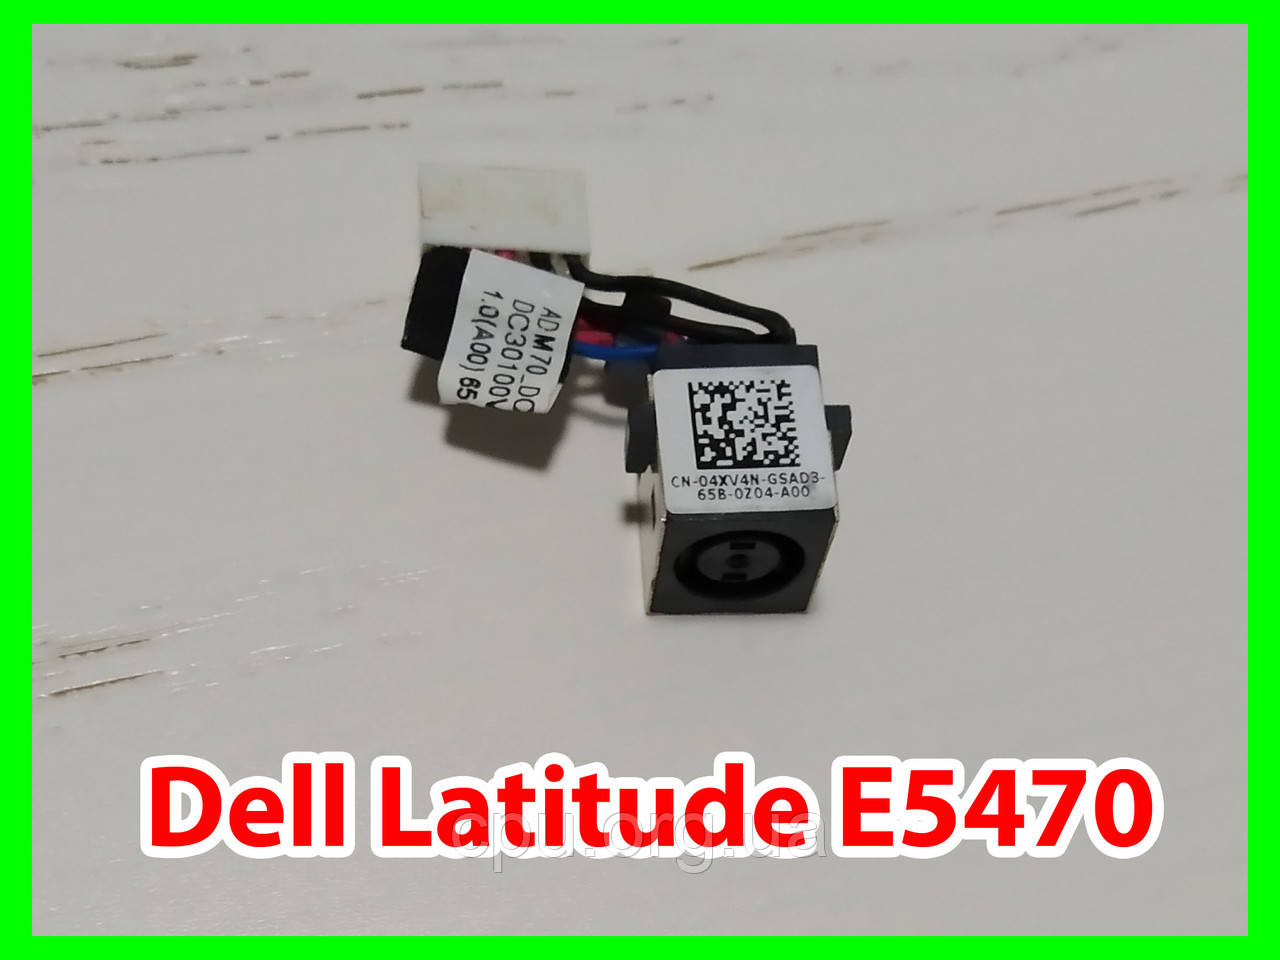 Dell Latitude E5470 кабель питания, power cable 4XV4N 04XV4N